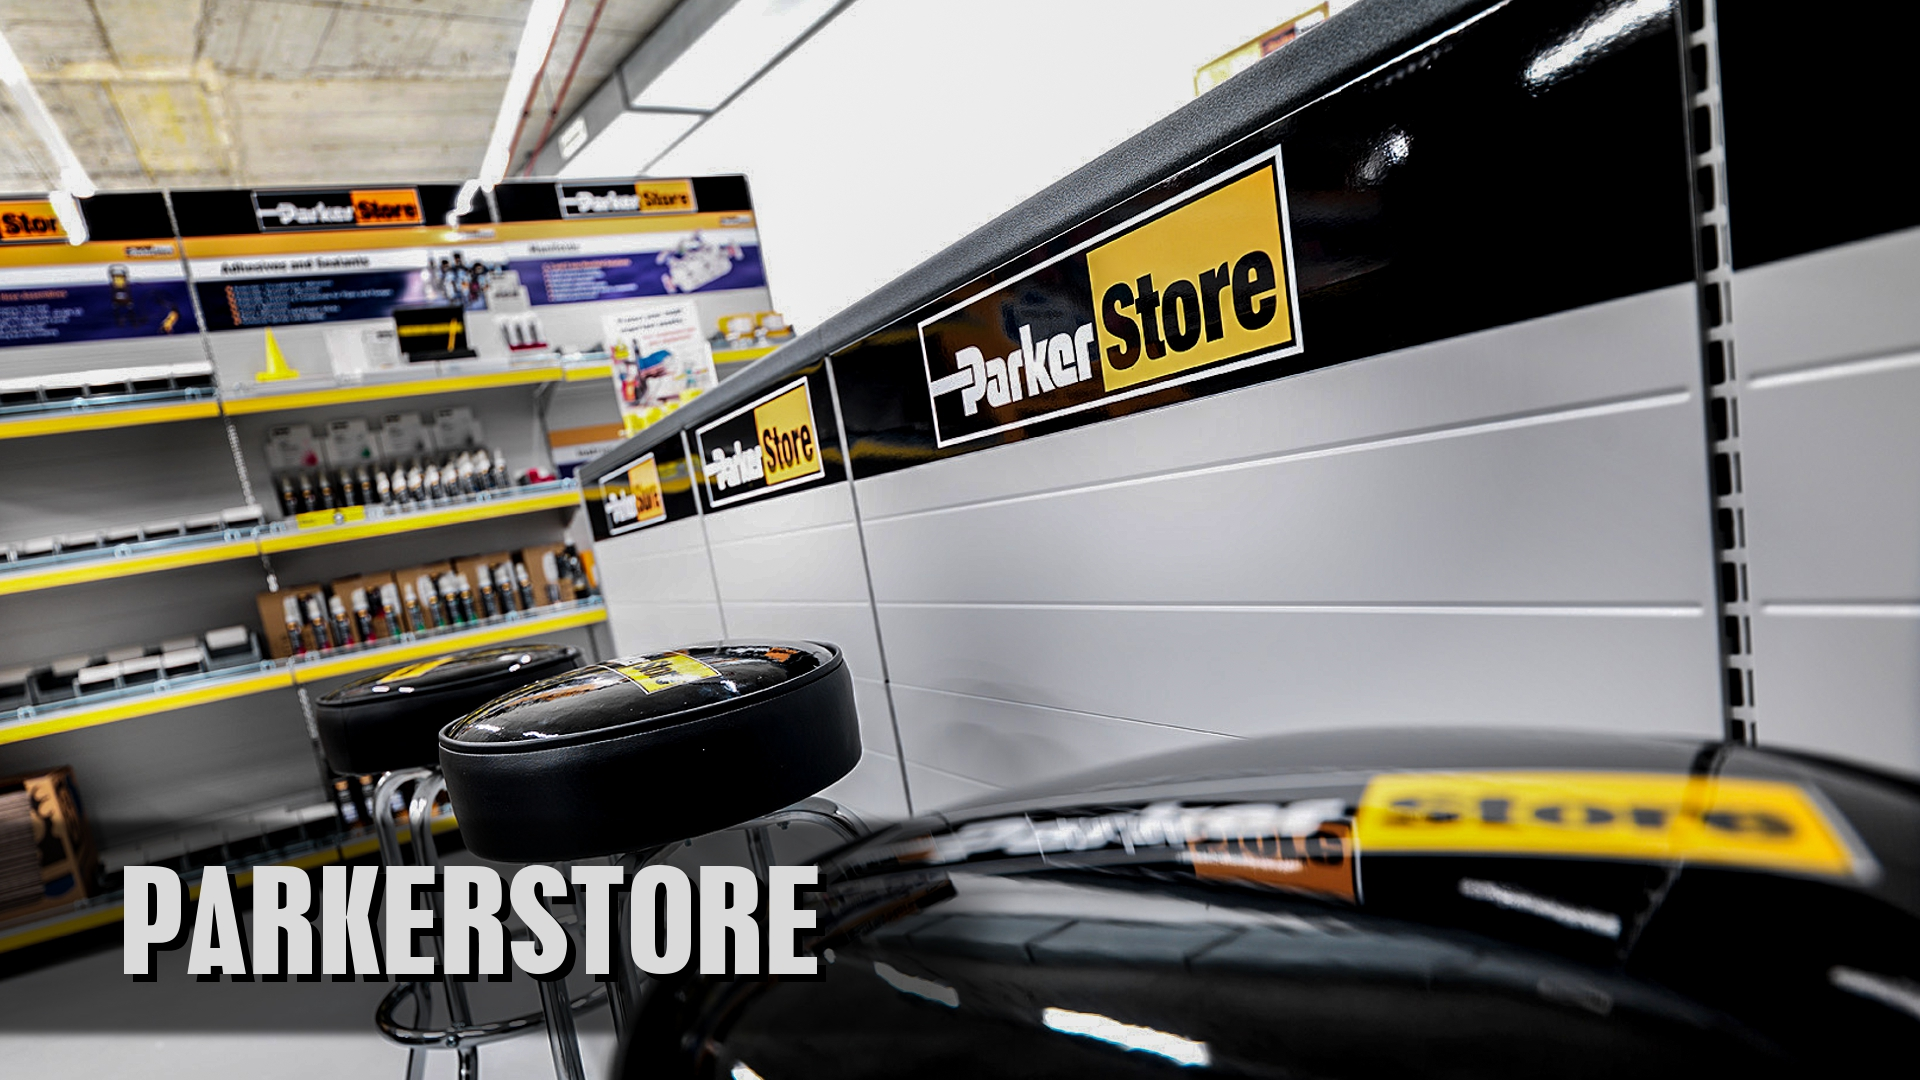 Go to Parkerstore